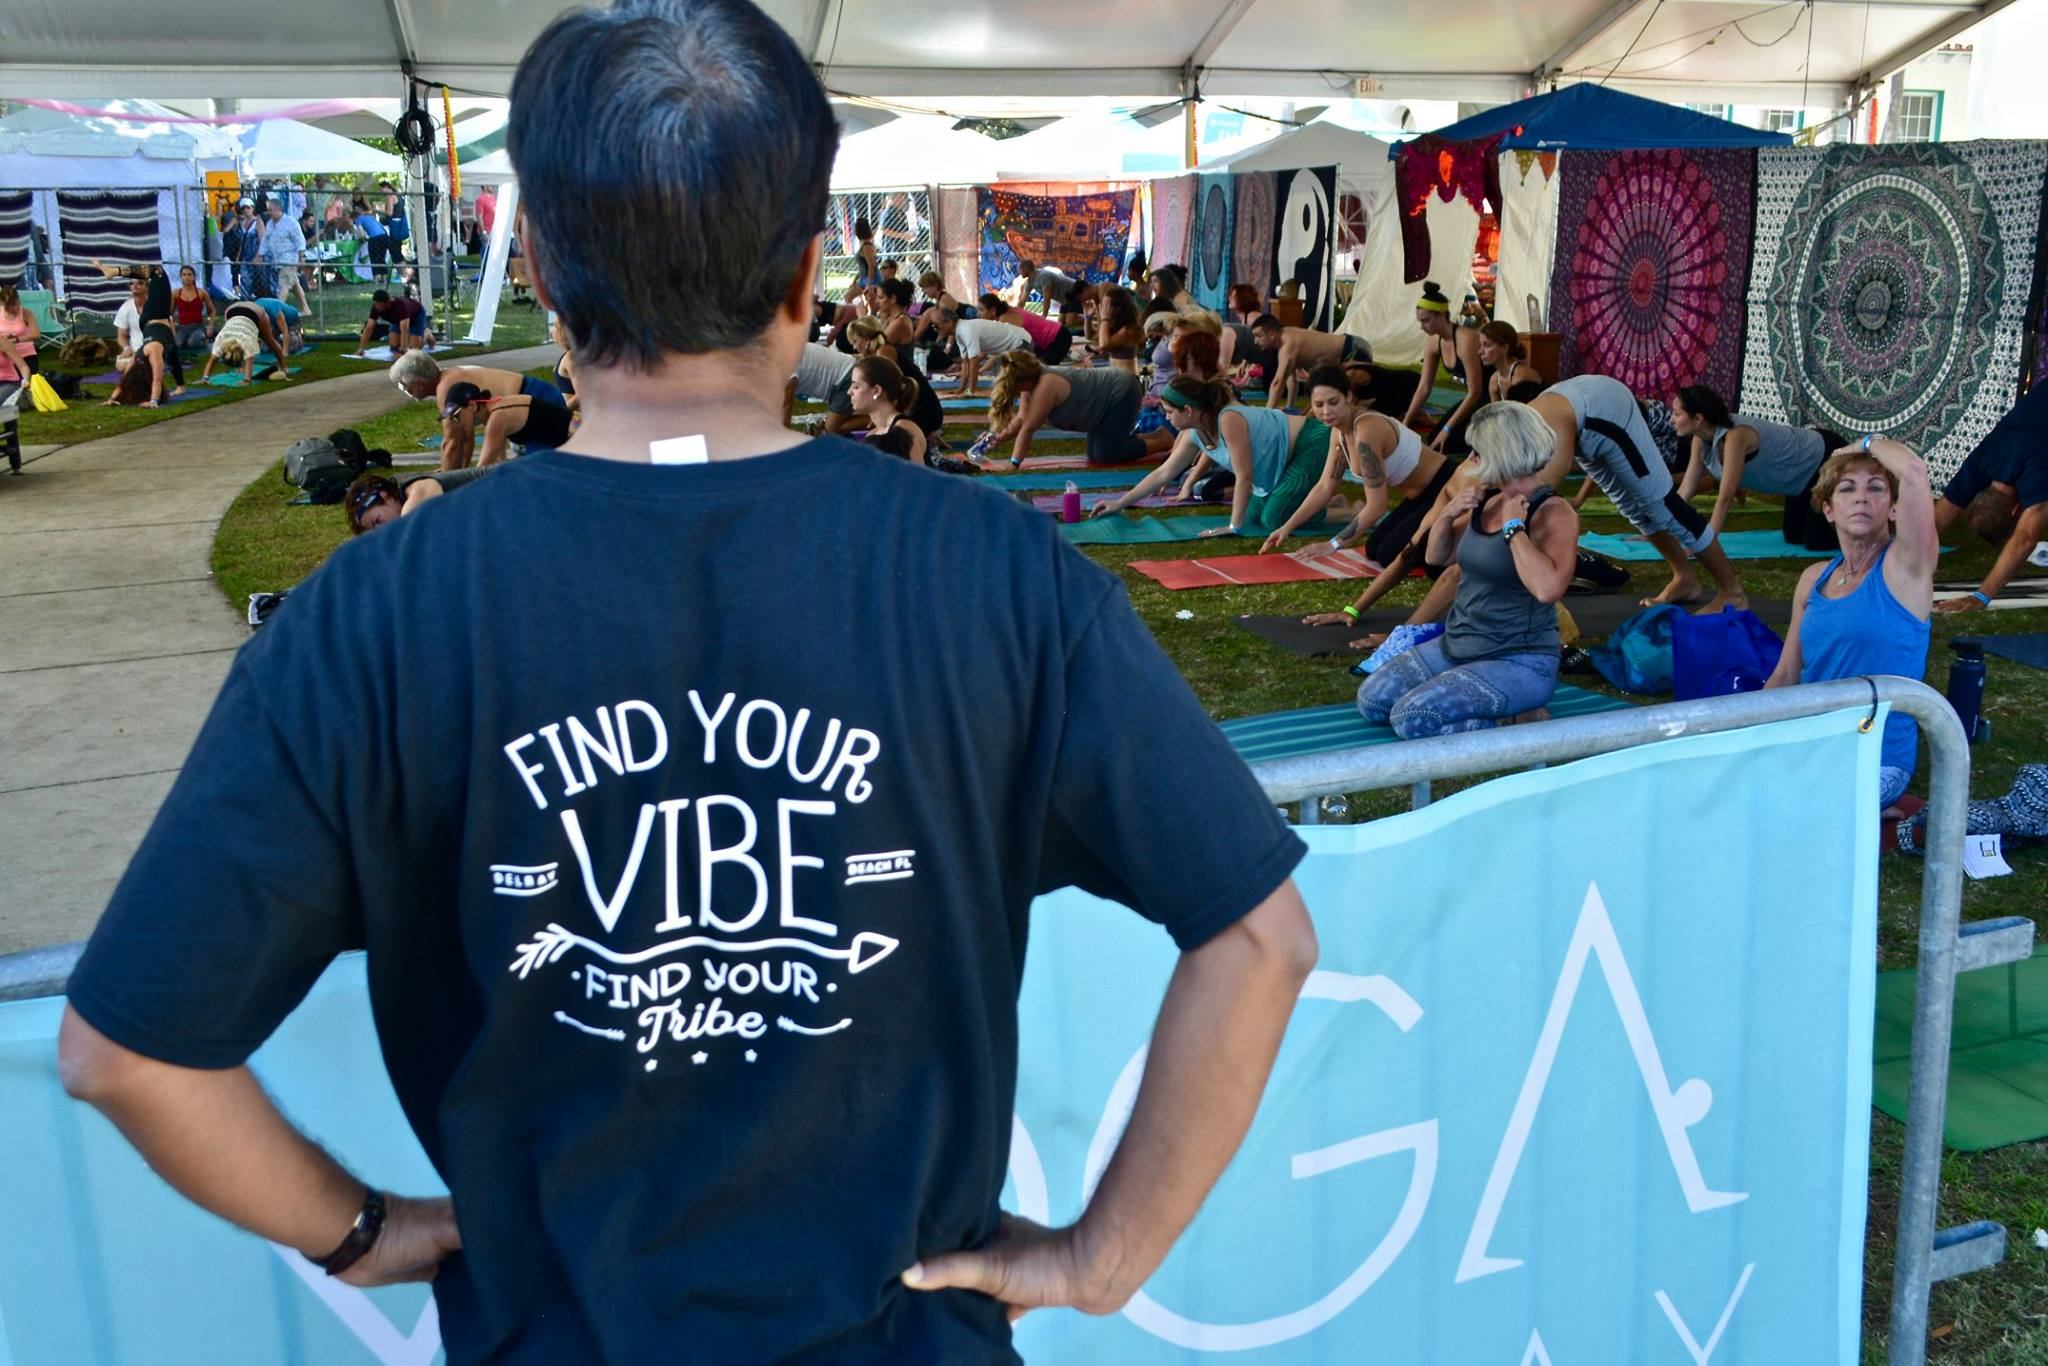 Yoga Fun Day Evangelist Best Yoga Festival South Florida